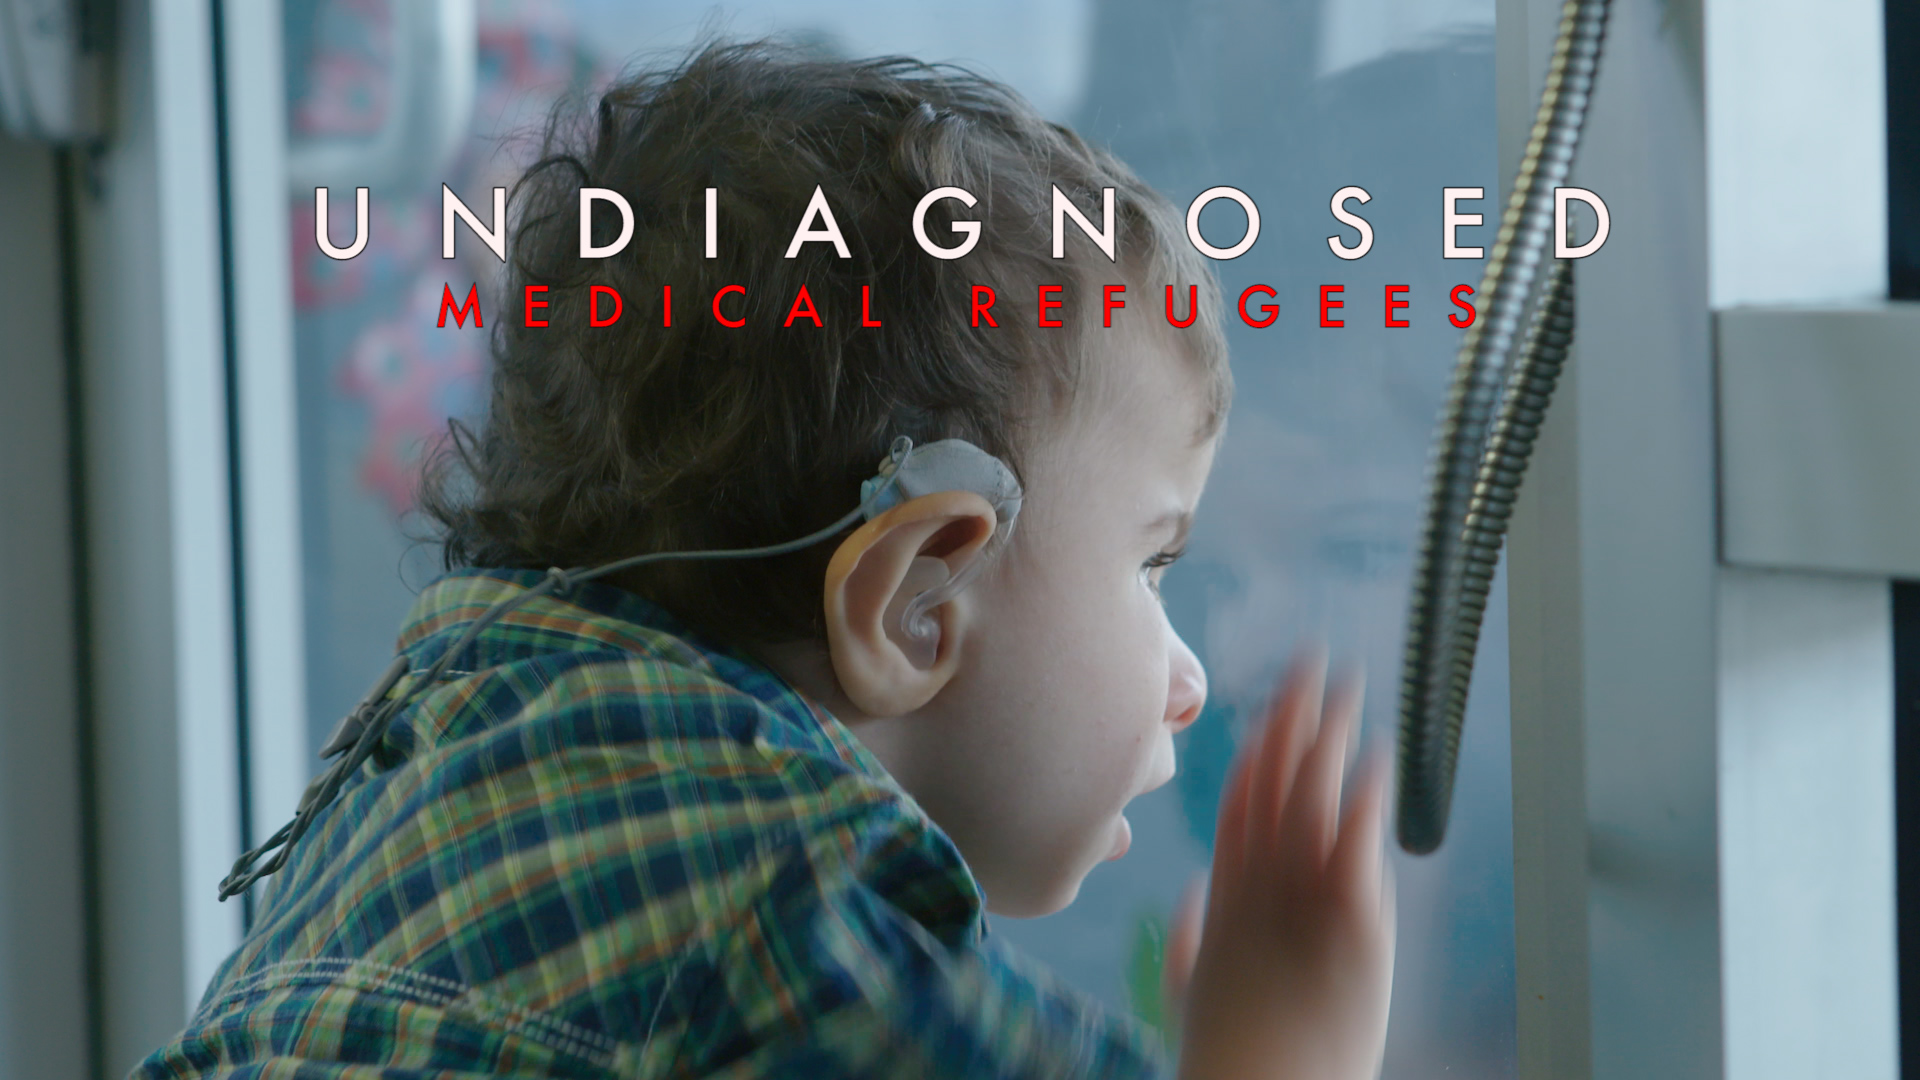 Braxton peers out a window while mom talks about their undiagnosed journey. This haunting image became the movie trailer front image.